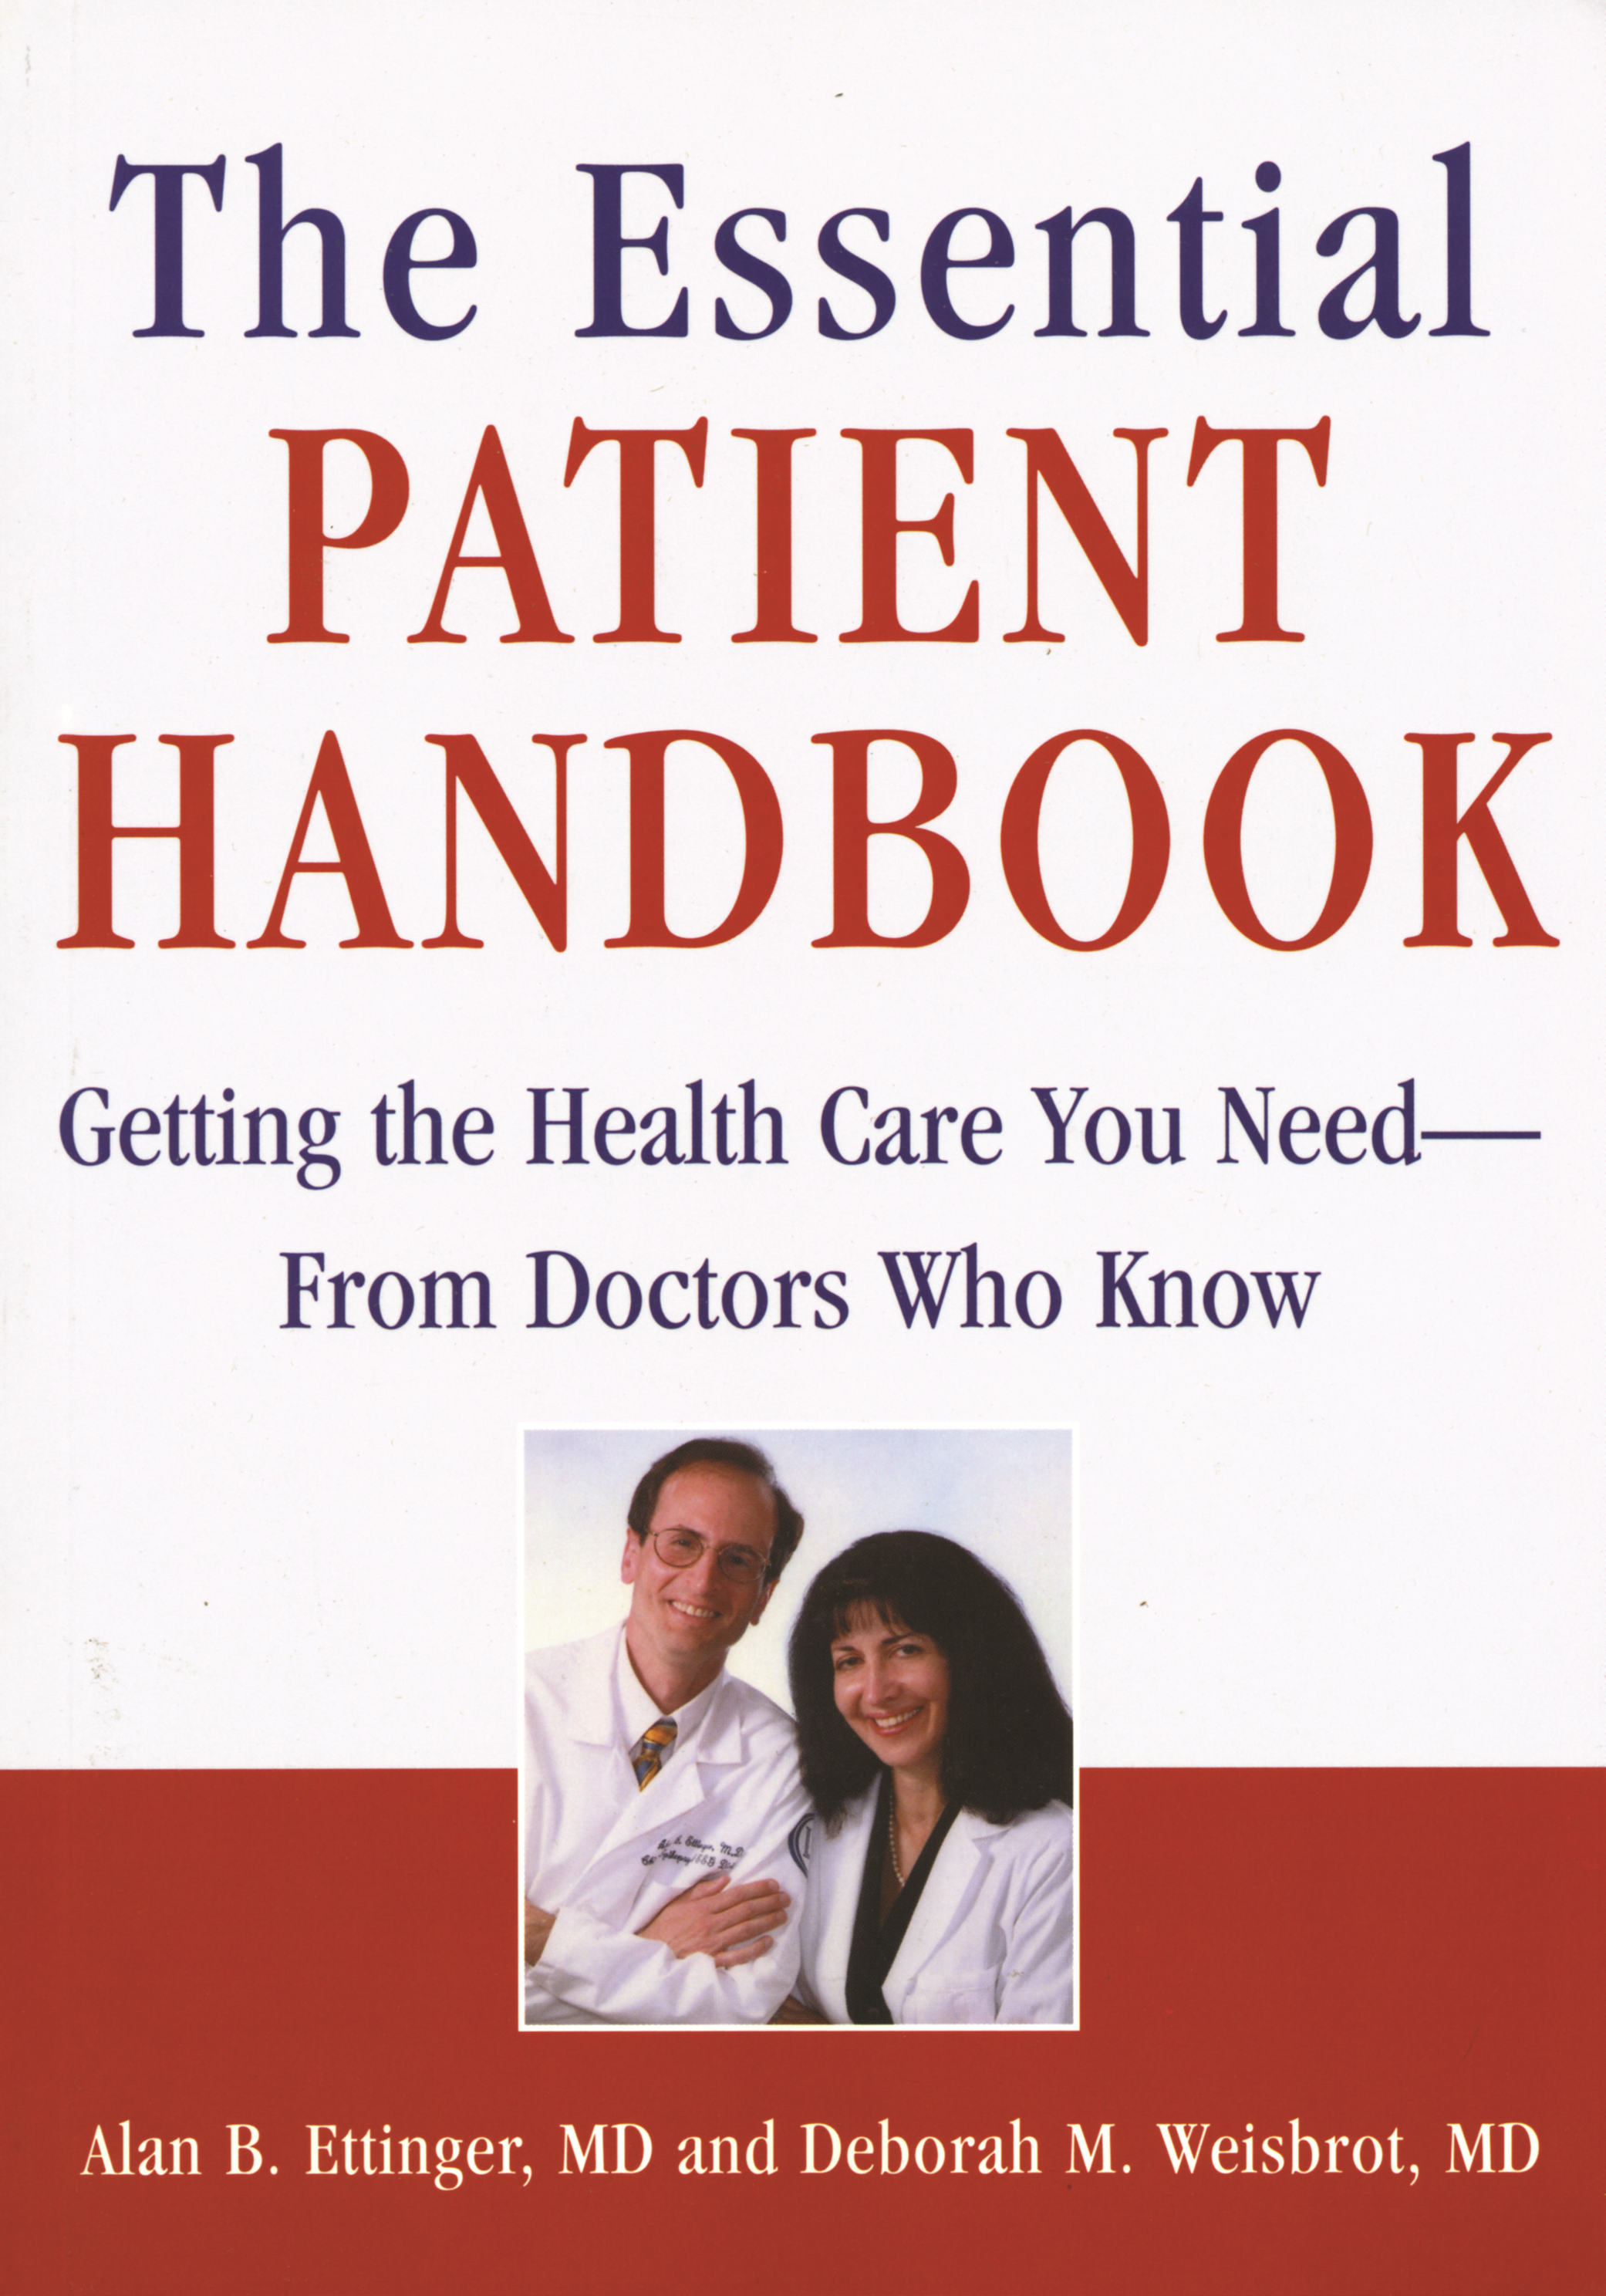 The Essential Patient Handbook By: Alan B. Ettinger, MD,Deborah M. Weisbrot,Dr. Alan Ettinger,Dr. Deborah Weisbrot